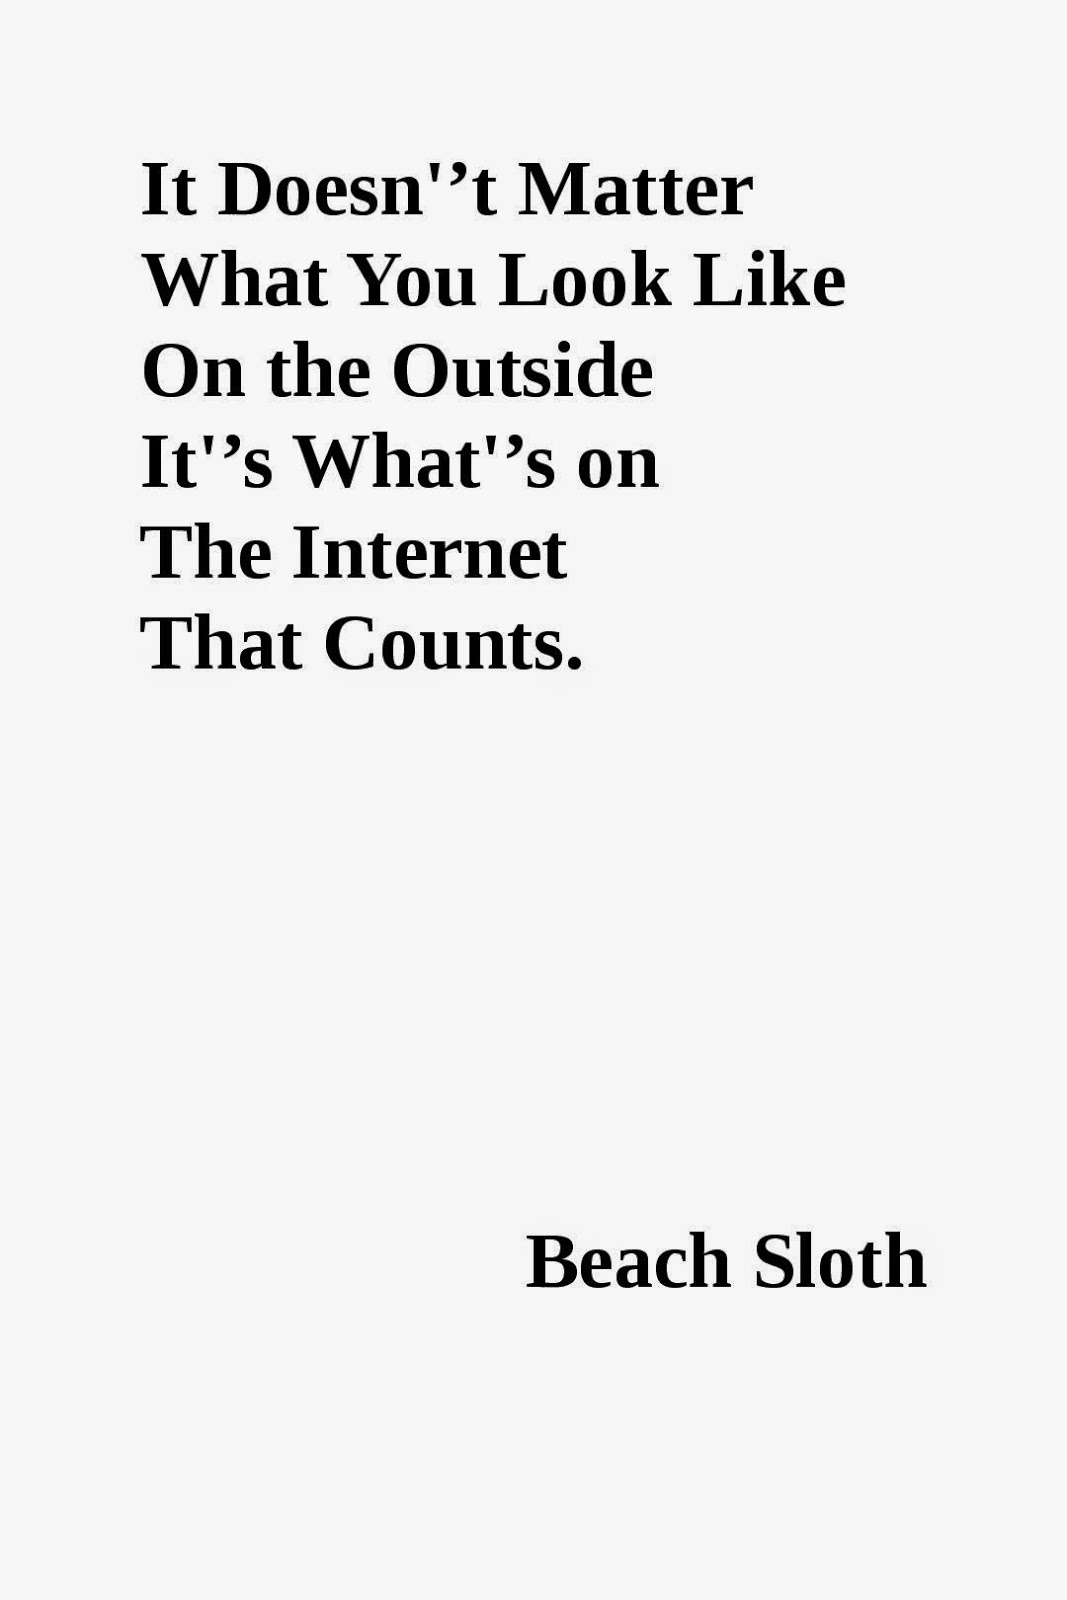 Beach Sloth – It doesn't matter what you look like on the outside it's what's on the internet that counts 11.0